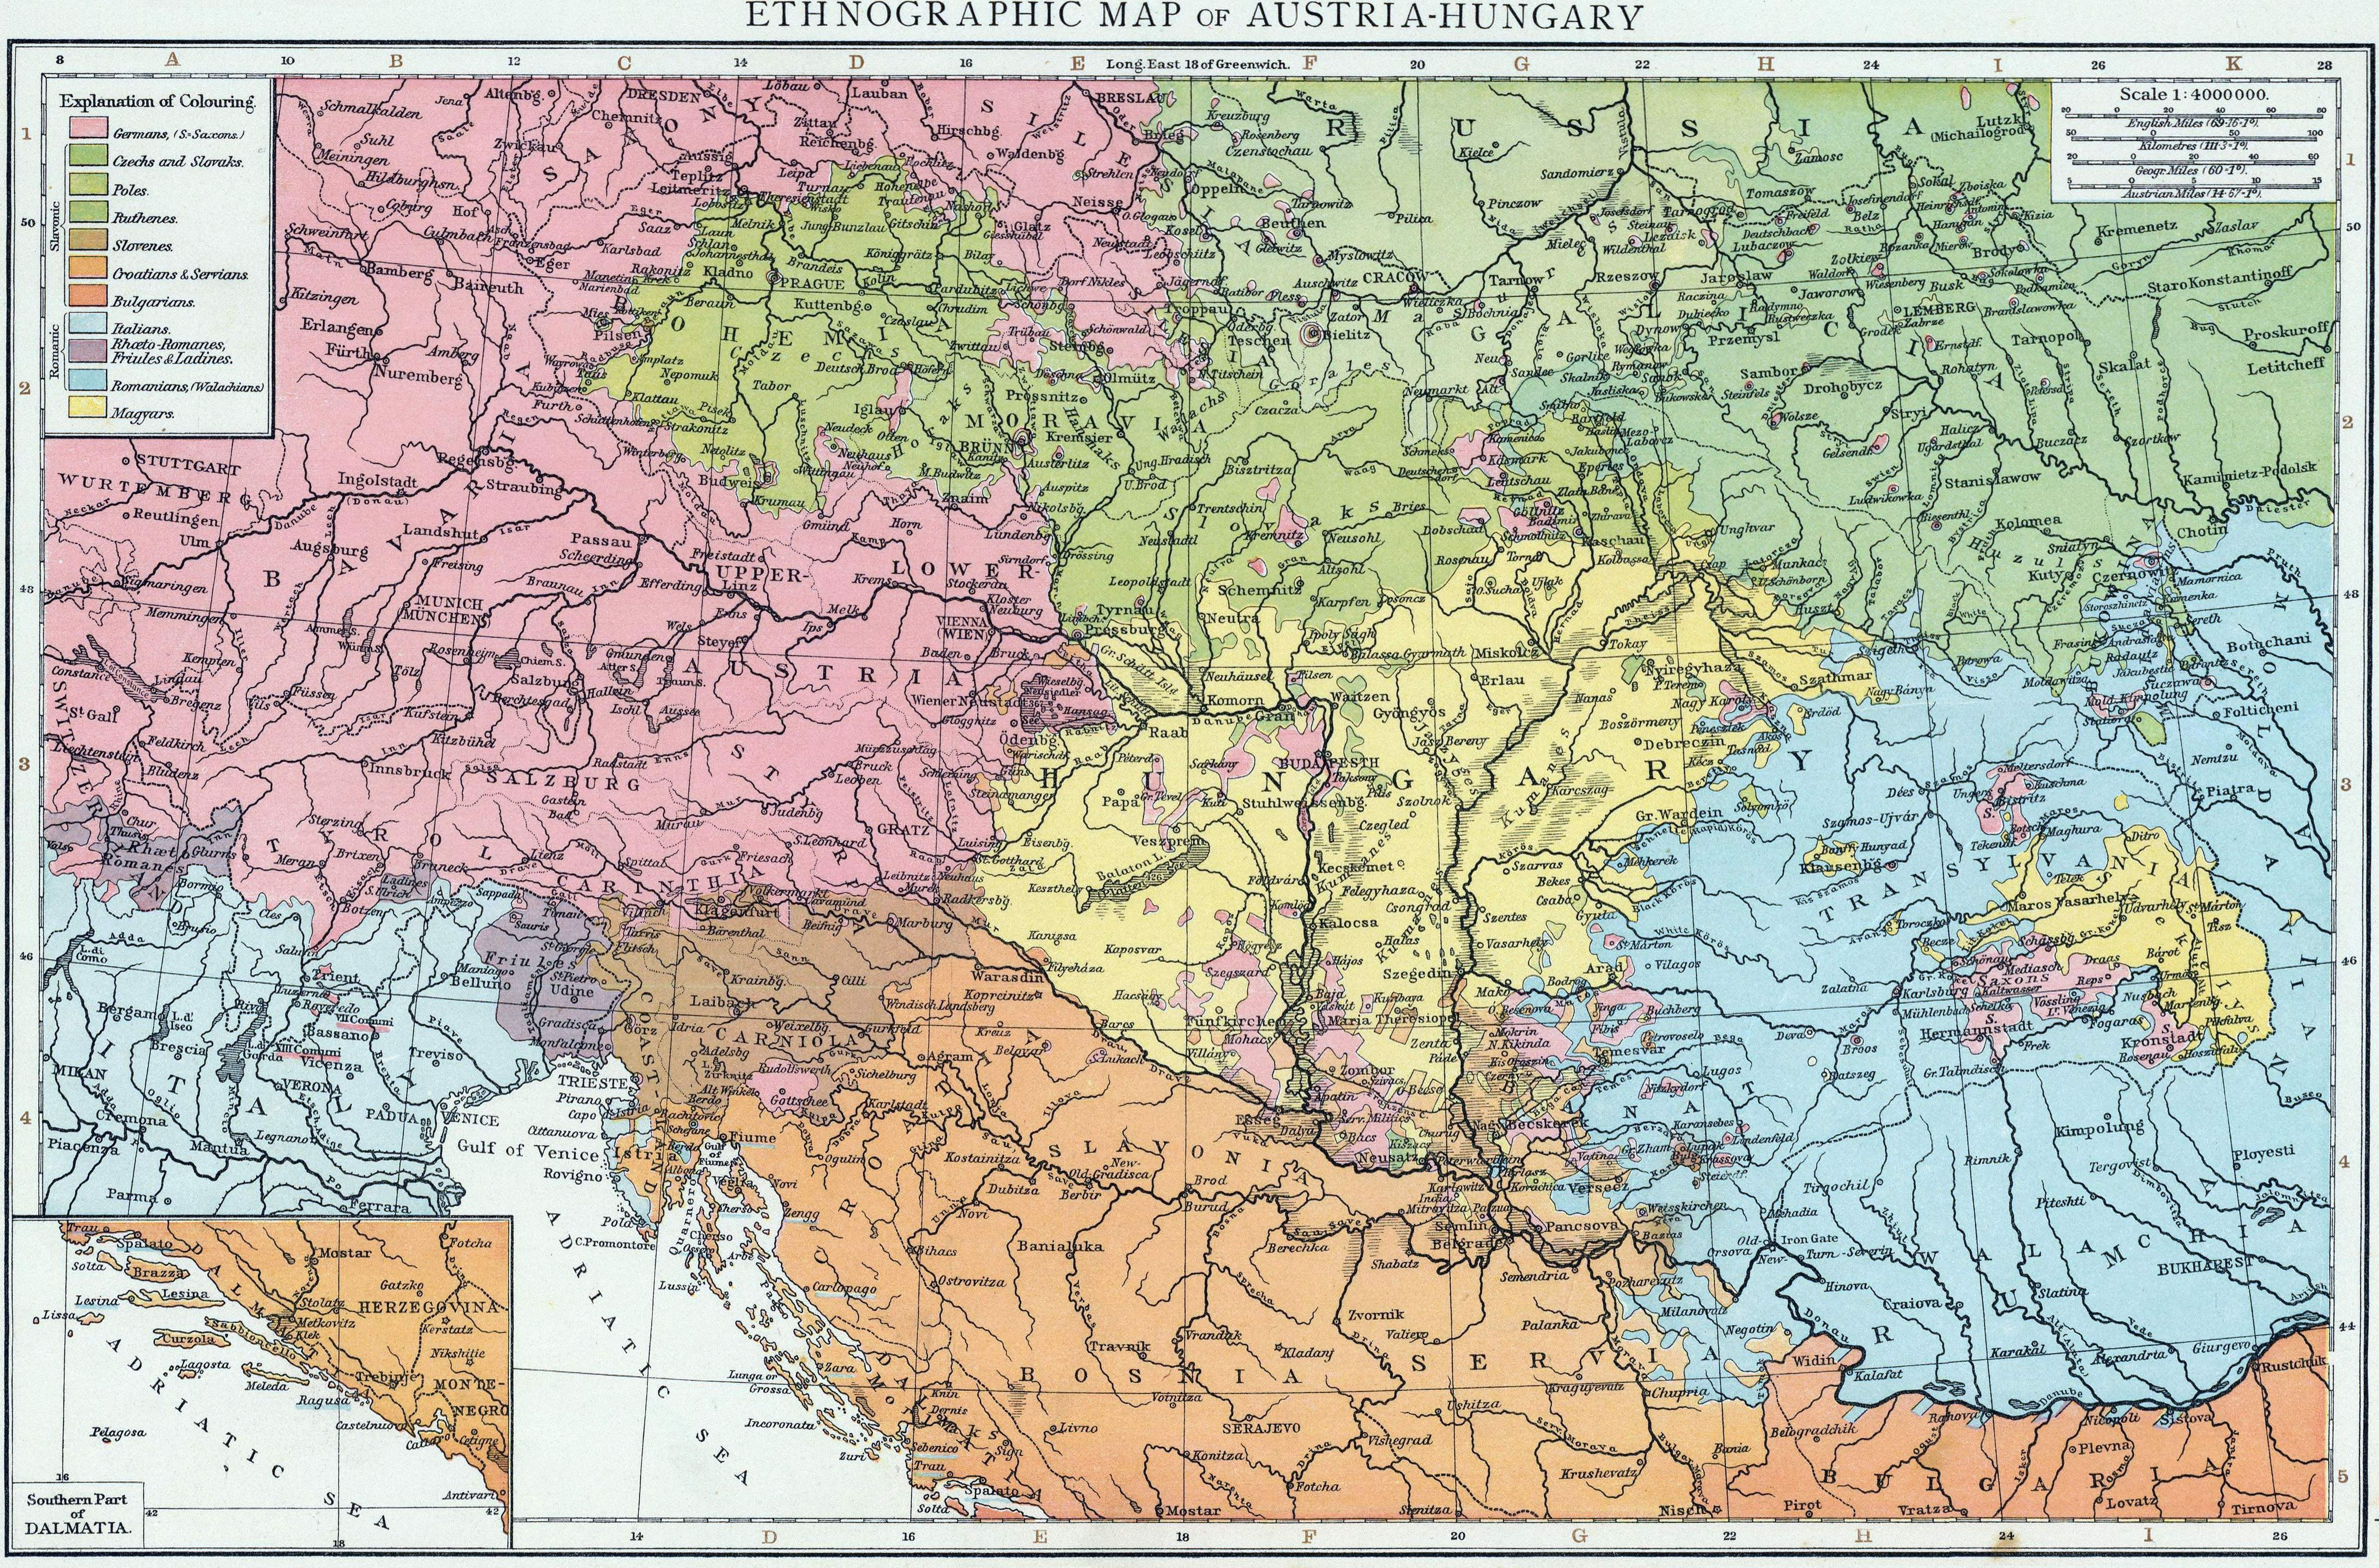 austria hungary Austria-hungary: austria-hungary, the habsburg empire from the constitutional compromise (ausgleich) of 1867 between austria and hungary until the empire's collapse in 1918.